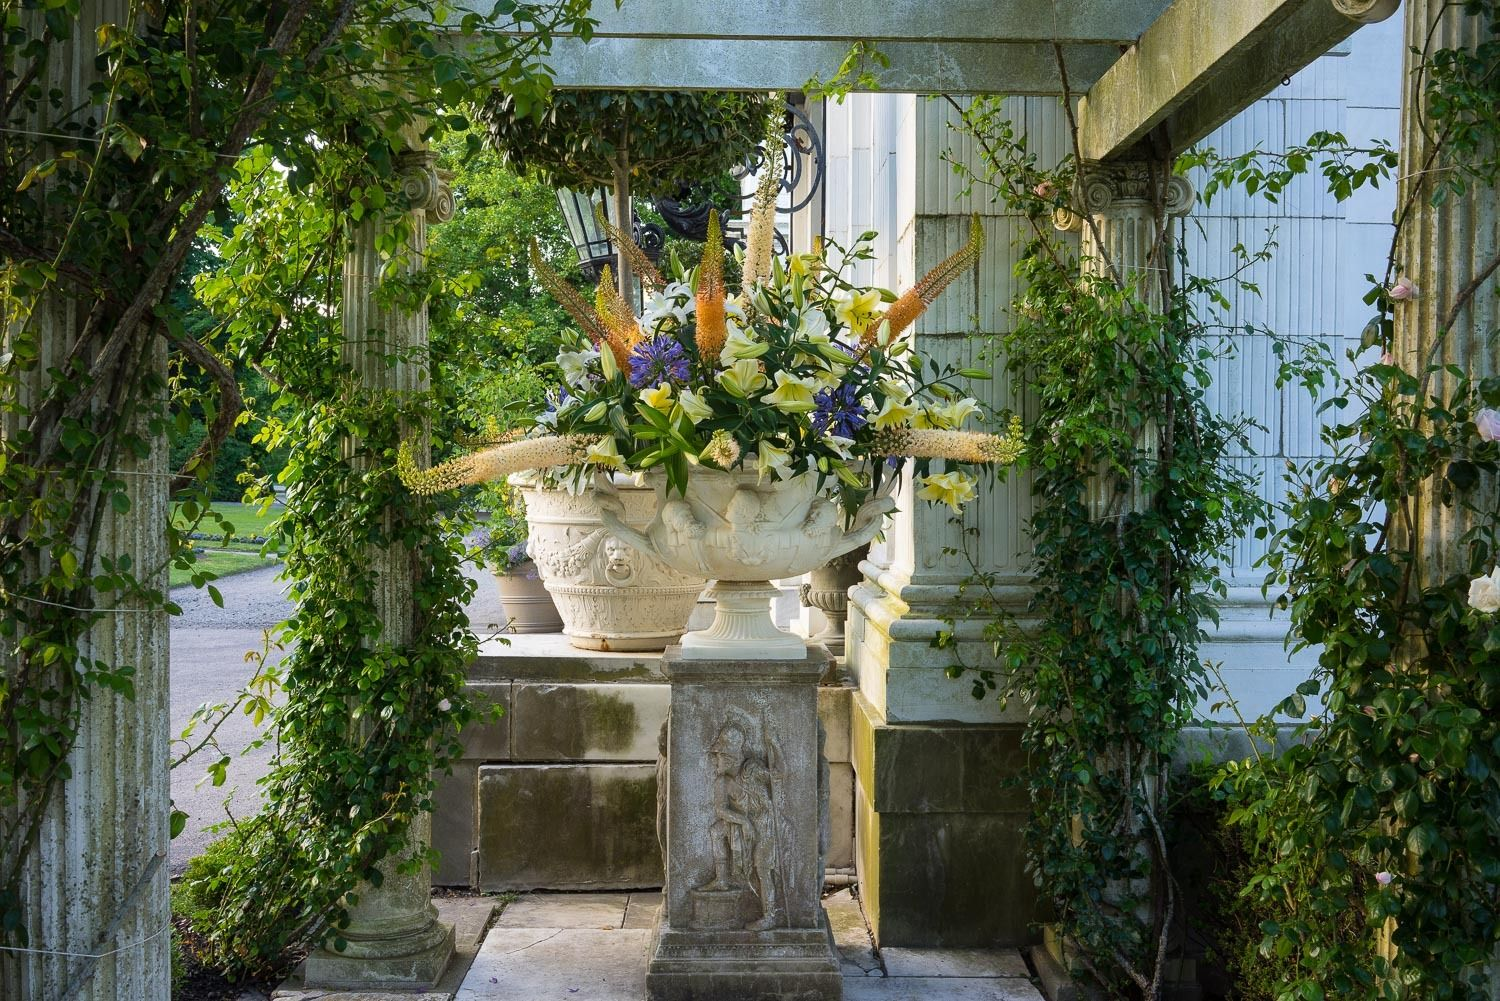 Newport Flower Show at Rosecliff